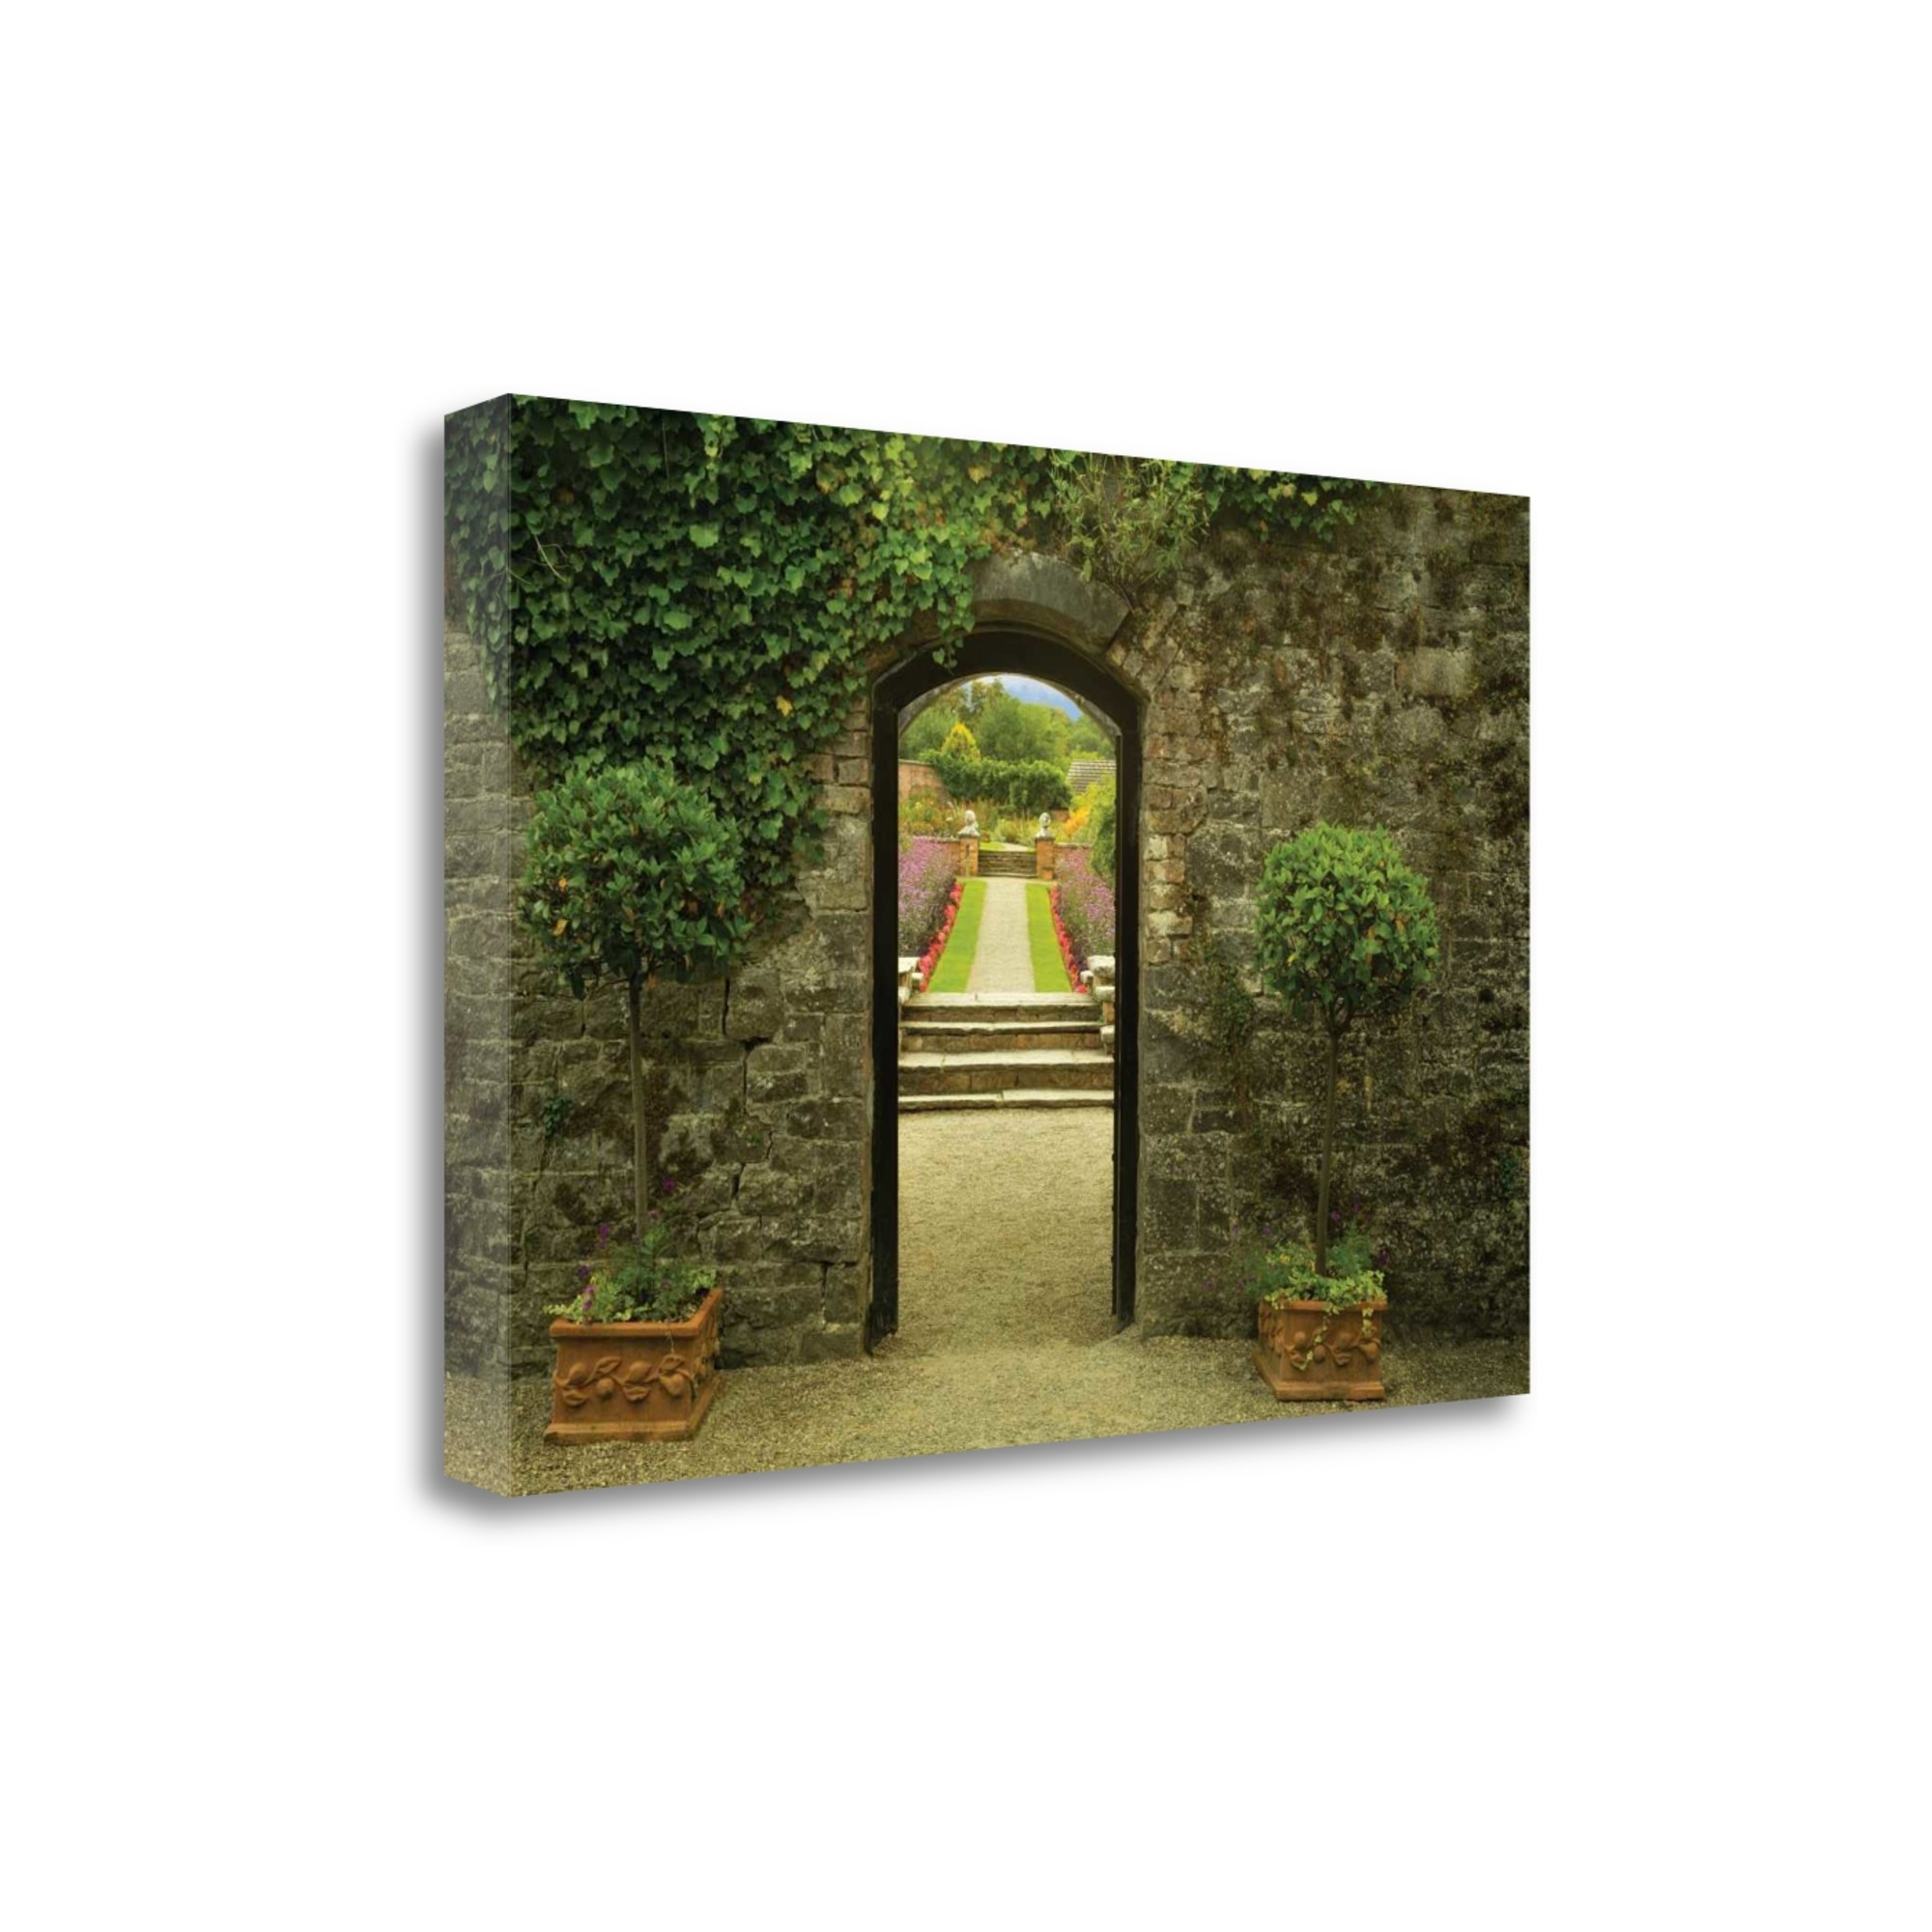 "Garden Arch By Dennis Frates, 24"" x 16\"" Fine Art Giclee Print on Gallery Wrap Canvas, Ready to Hang"